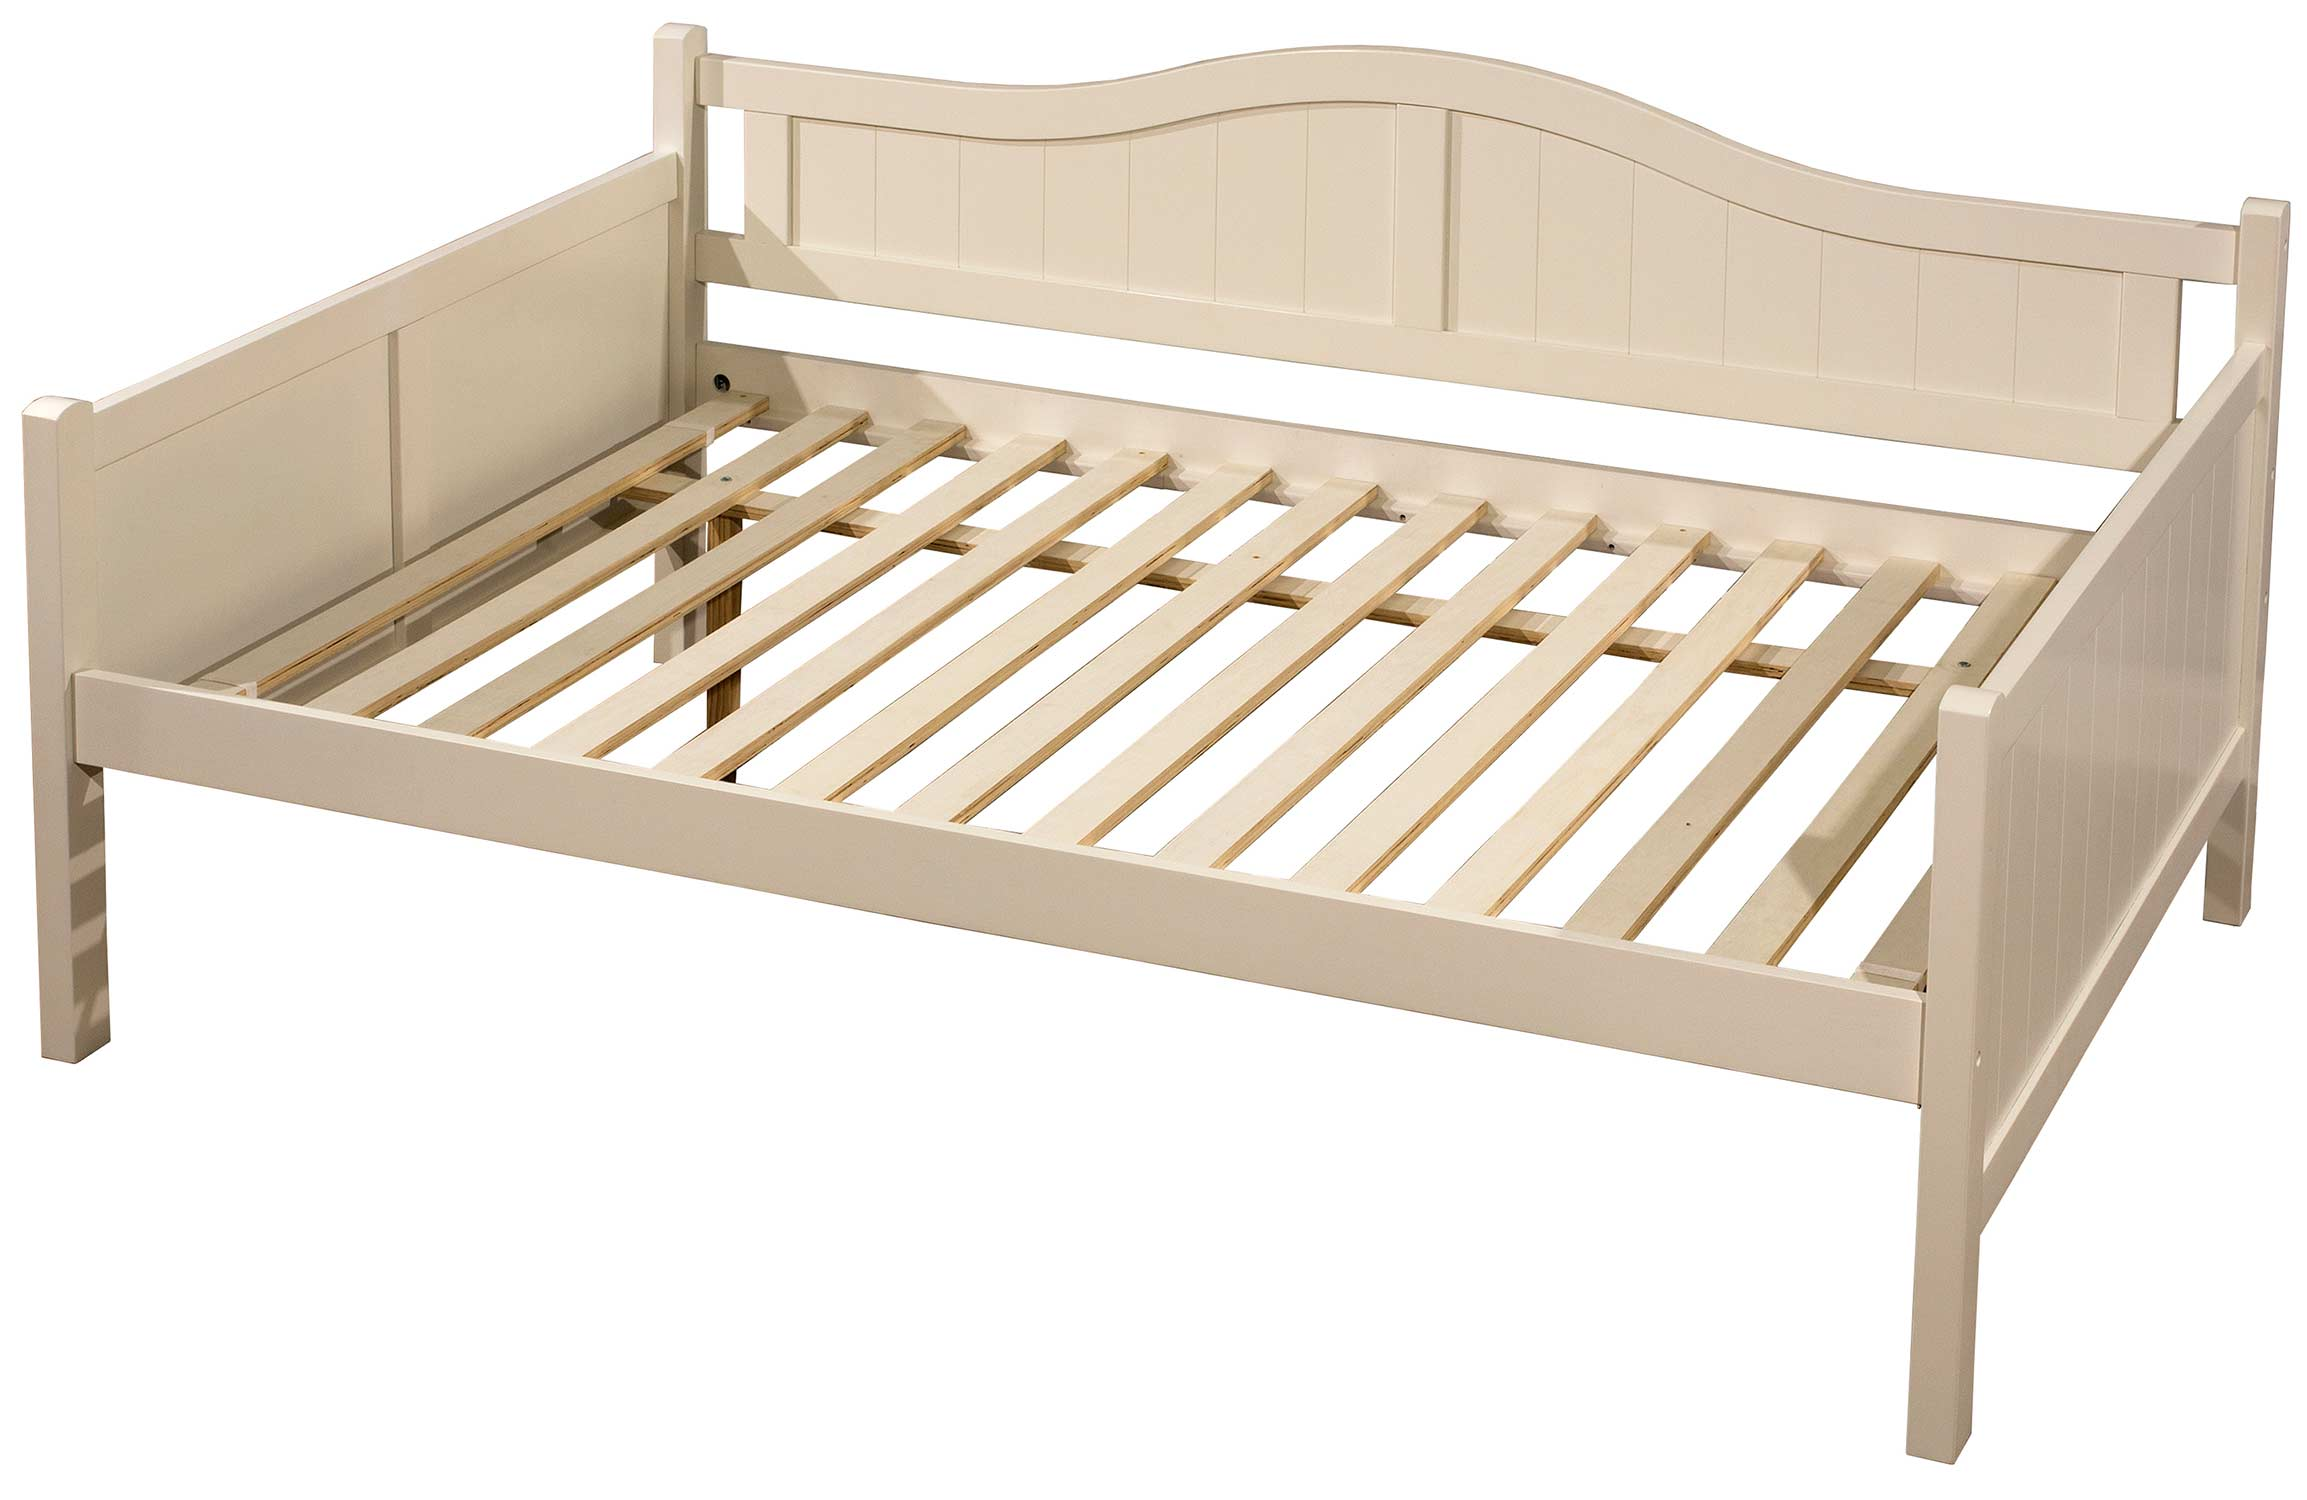 Hillsdale Staci Daybed - Full - White